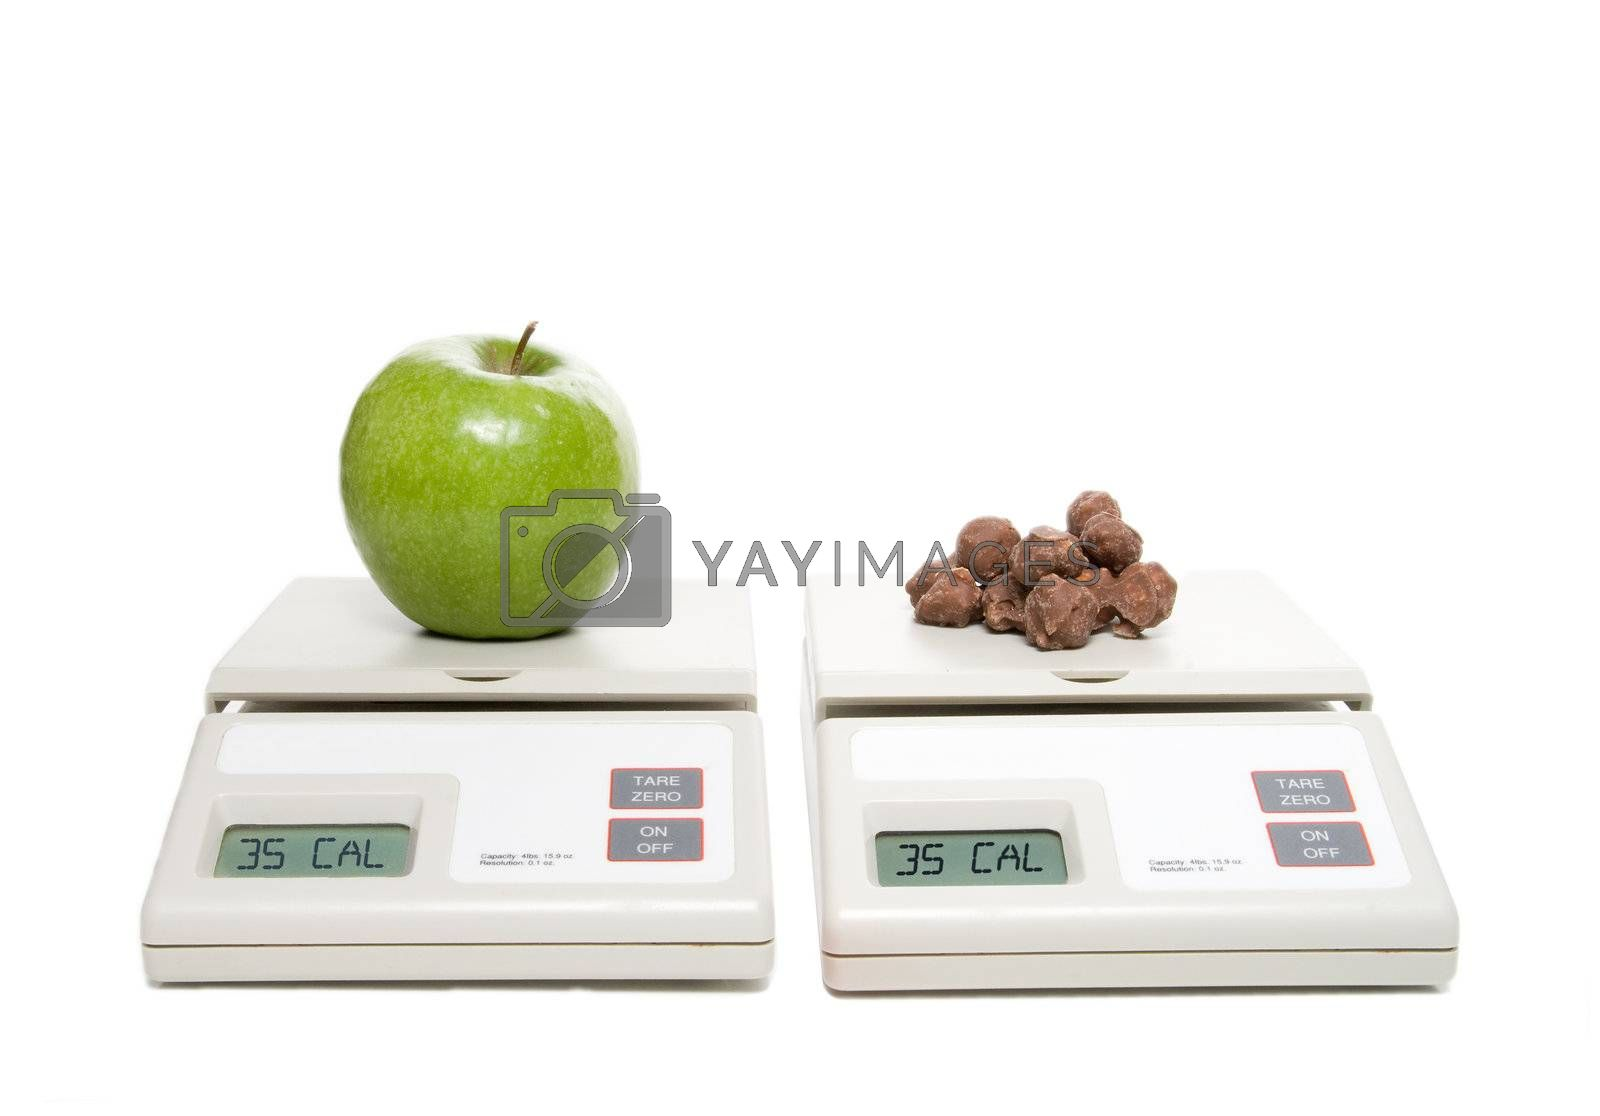 A scale with an apple and one with chocolate.